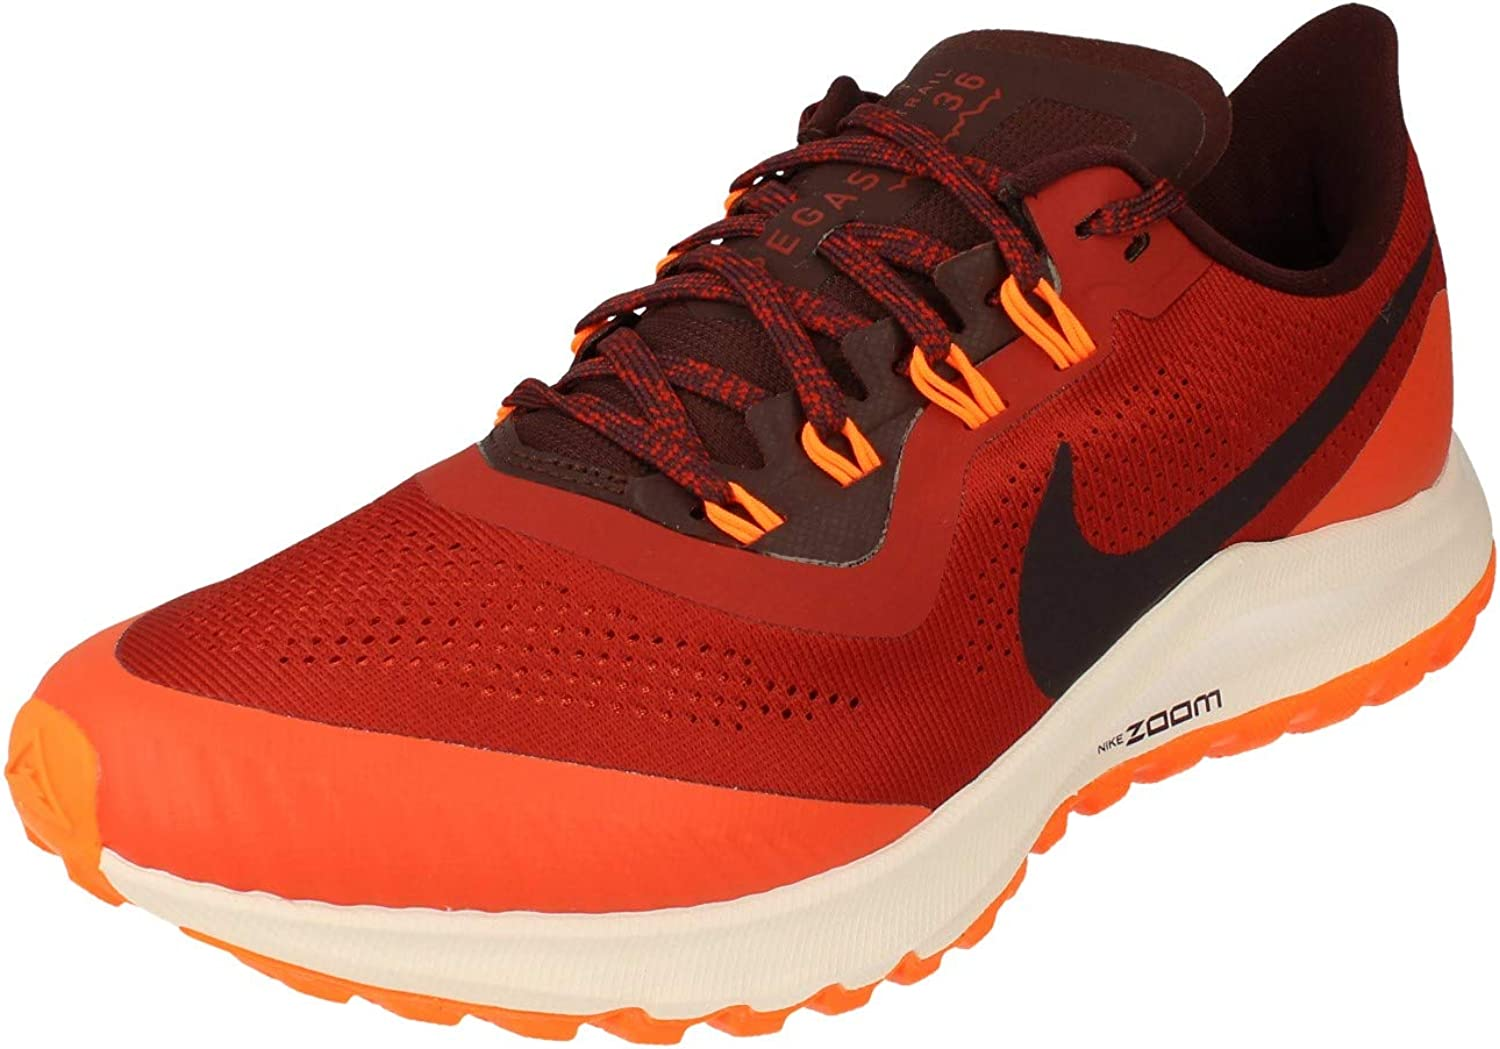 cráneo Malversar Agricultura  Amazon.com | Nike Men's Trail Running Shoes, US 7.5 | Trail Running